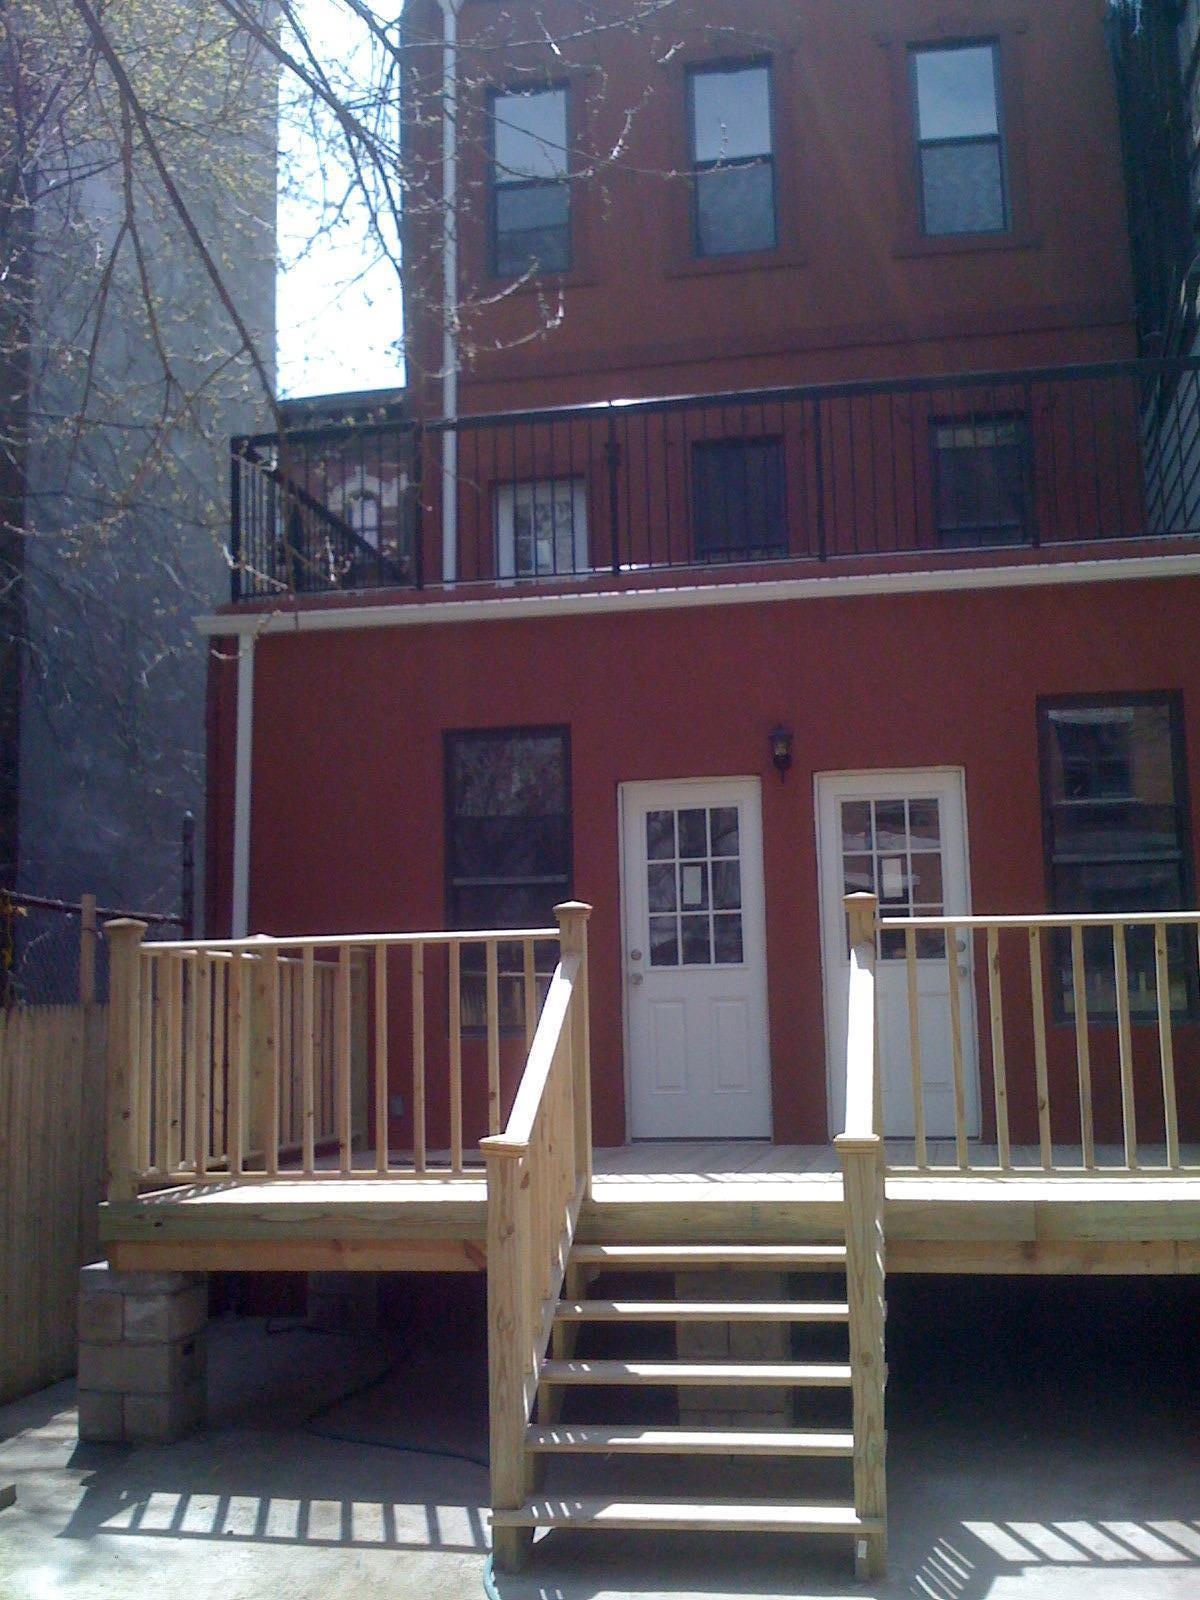 515 West 158th Street Washington Heights New York NY 10032